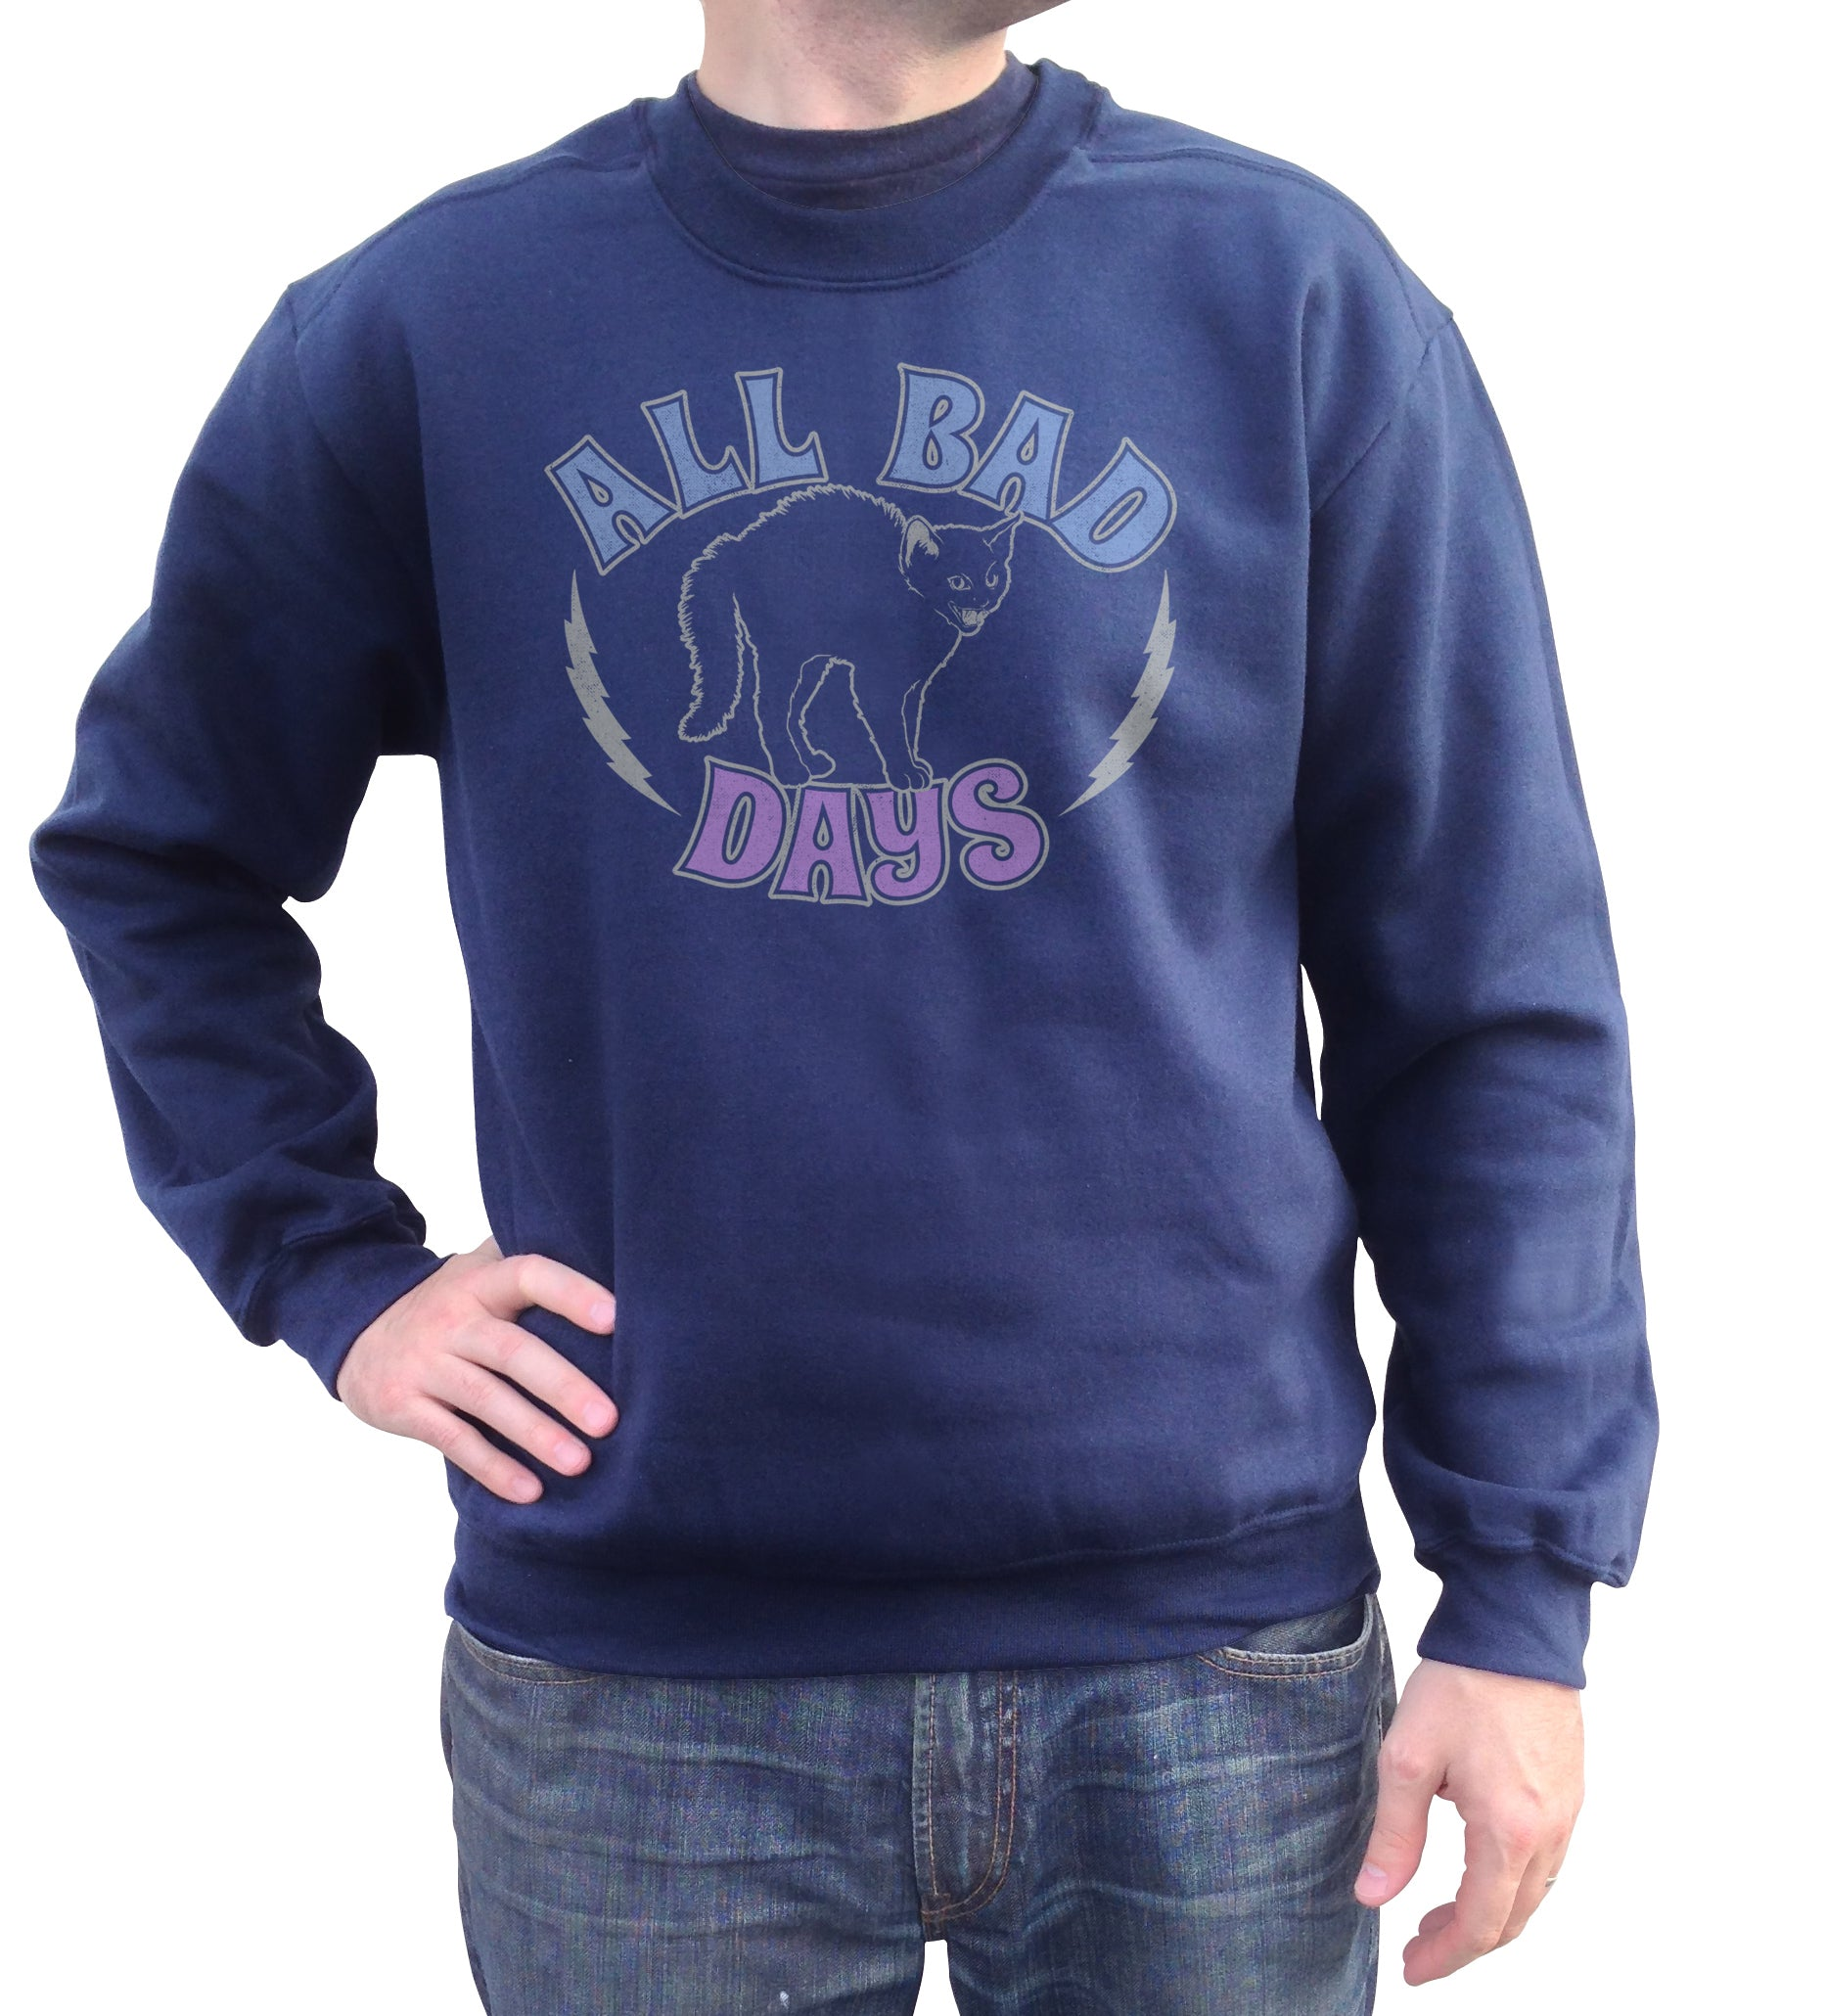 Unisex All Bad Days Sweatshirt